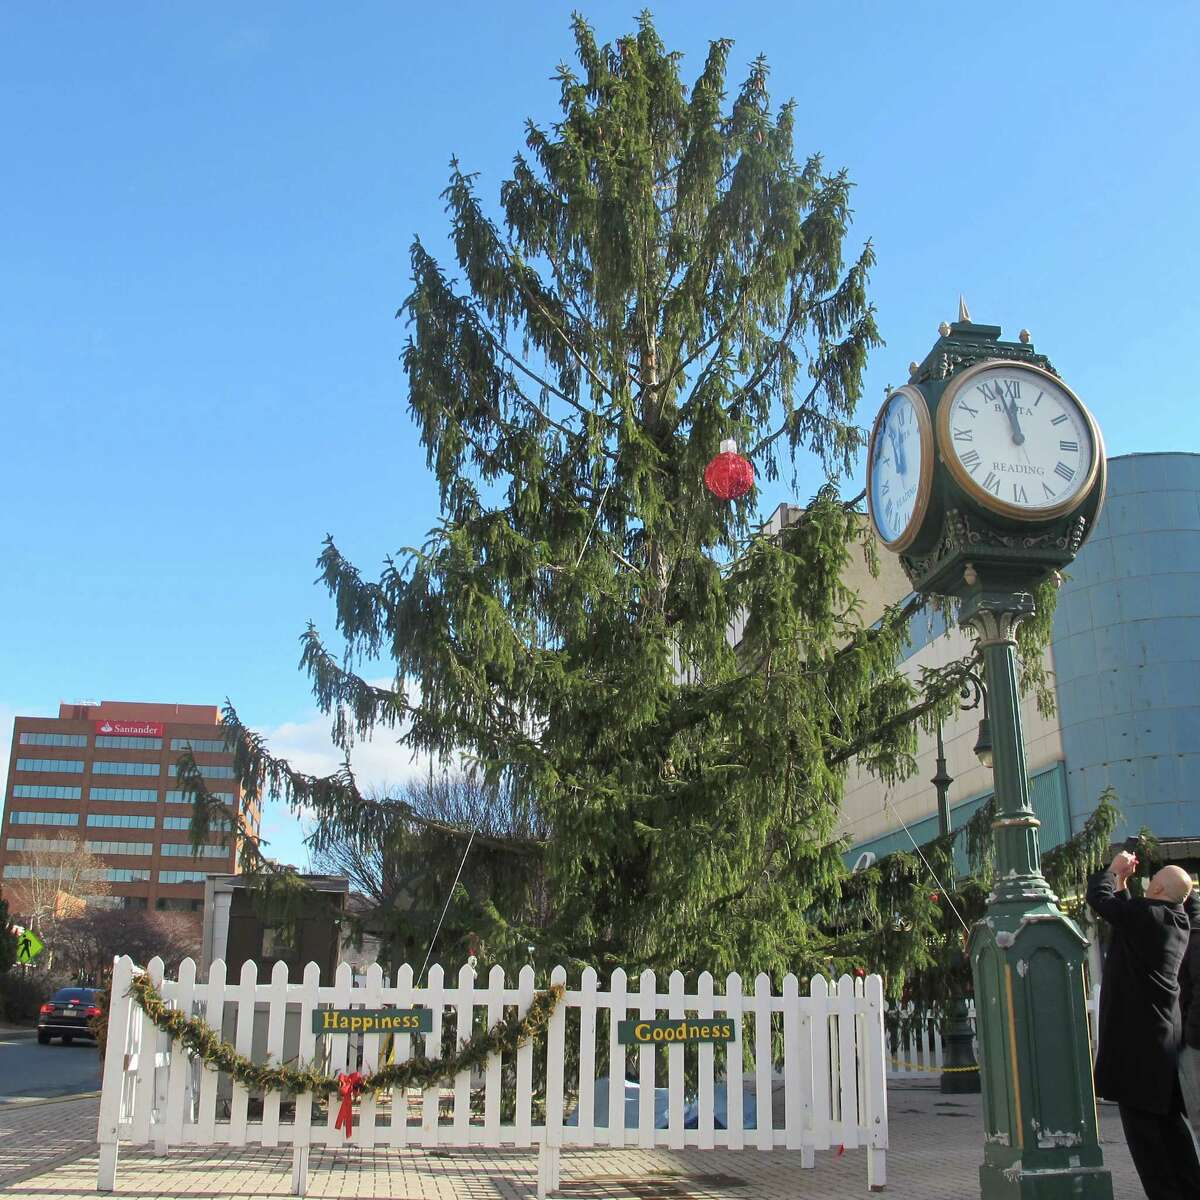 """FILE - In this Dec. 12, 2014 file photo City Councilman Jeff Waltman photographs the city's official Christmas tree in Reading, Pa. A year after its scraggly """"Charlie Brown"""" Christmas tree caused an uproar, the city is putting up a more traditional tannenbaum this holiday season. The official Christmas tree in Reading will be a pleasingly plump, 25-foot-tall white fir, cut down on Monday, Nov. 9, 2015."""